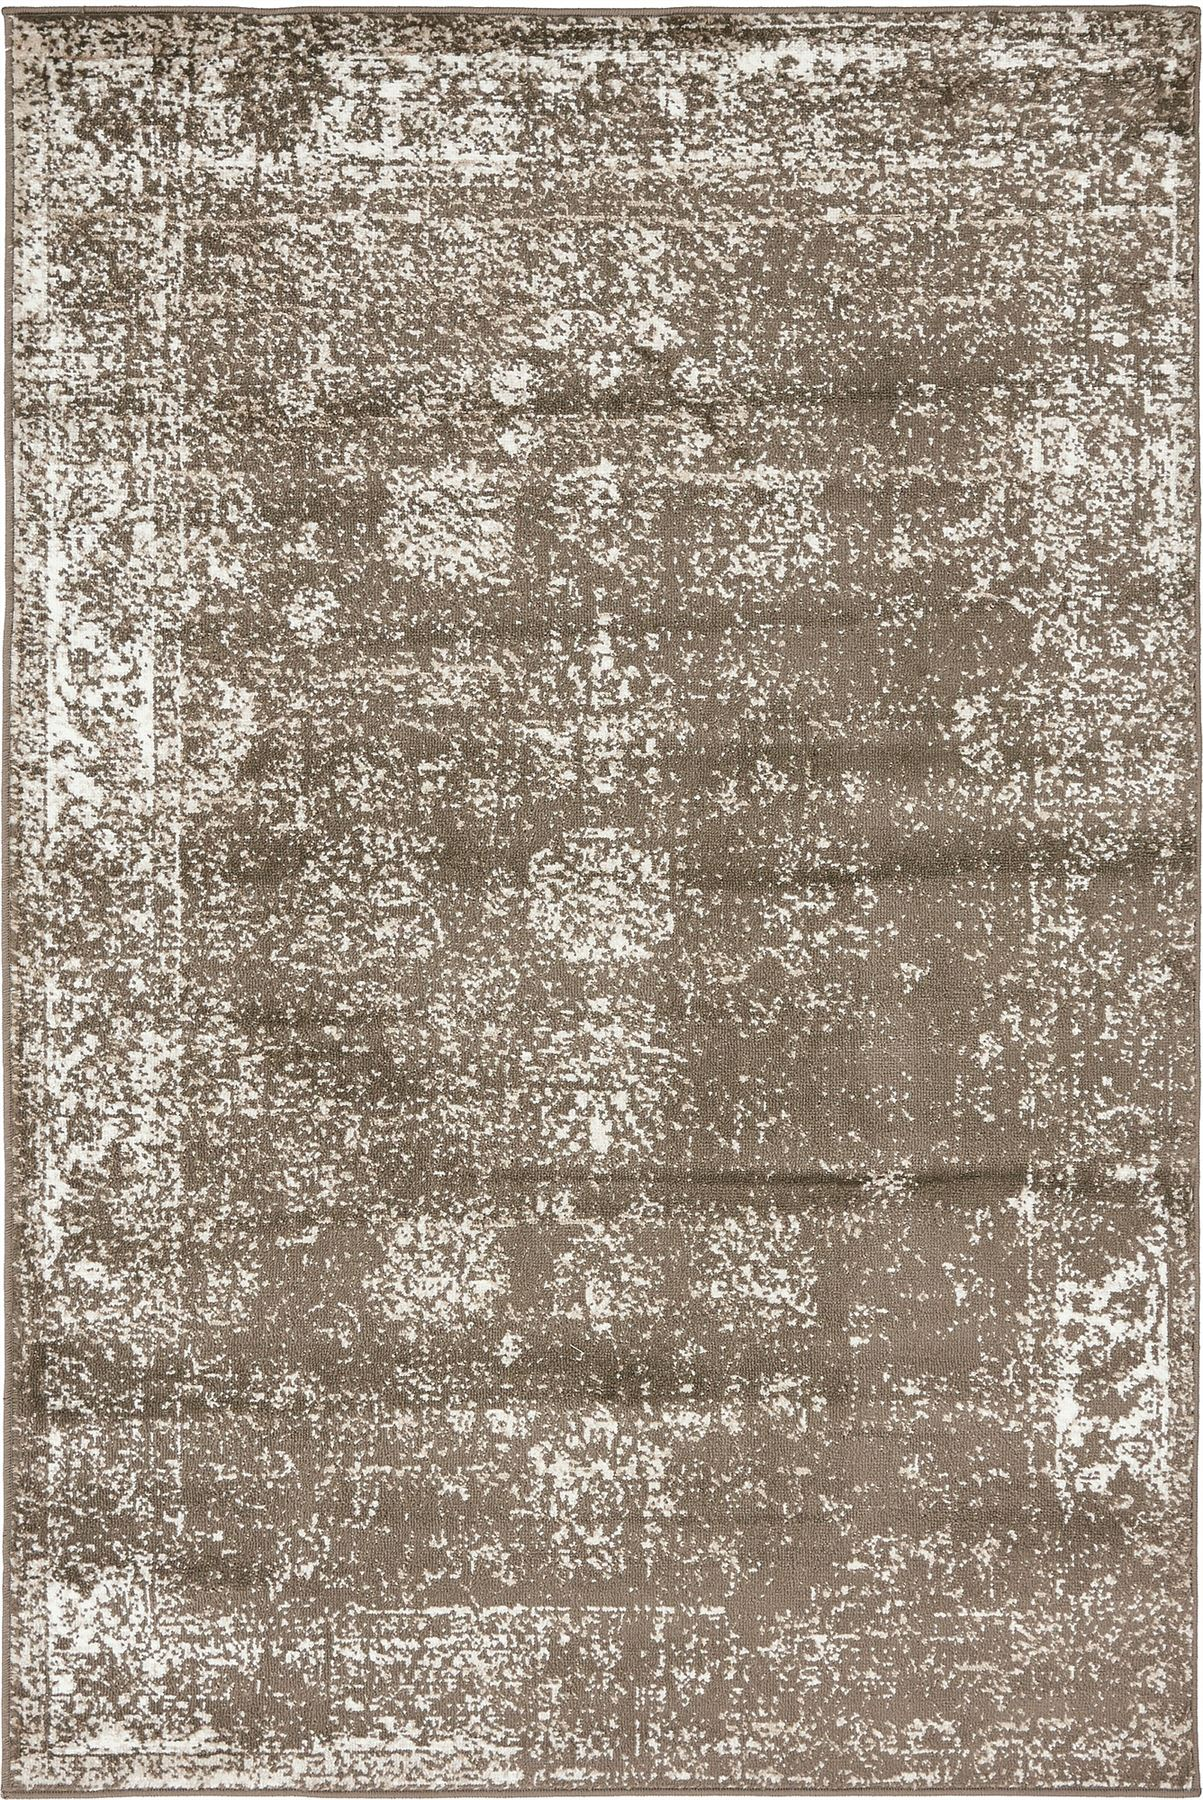 New Persian Style Rugs Floor Carpets Modern Designs